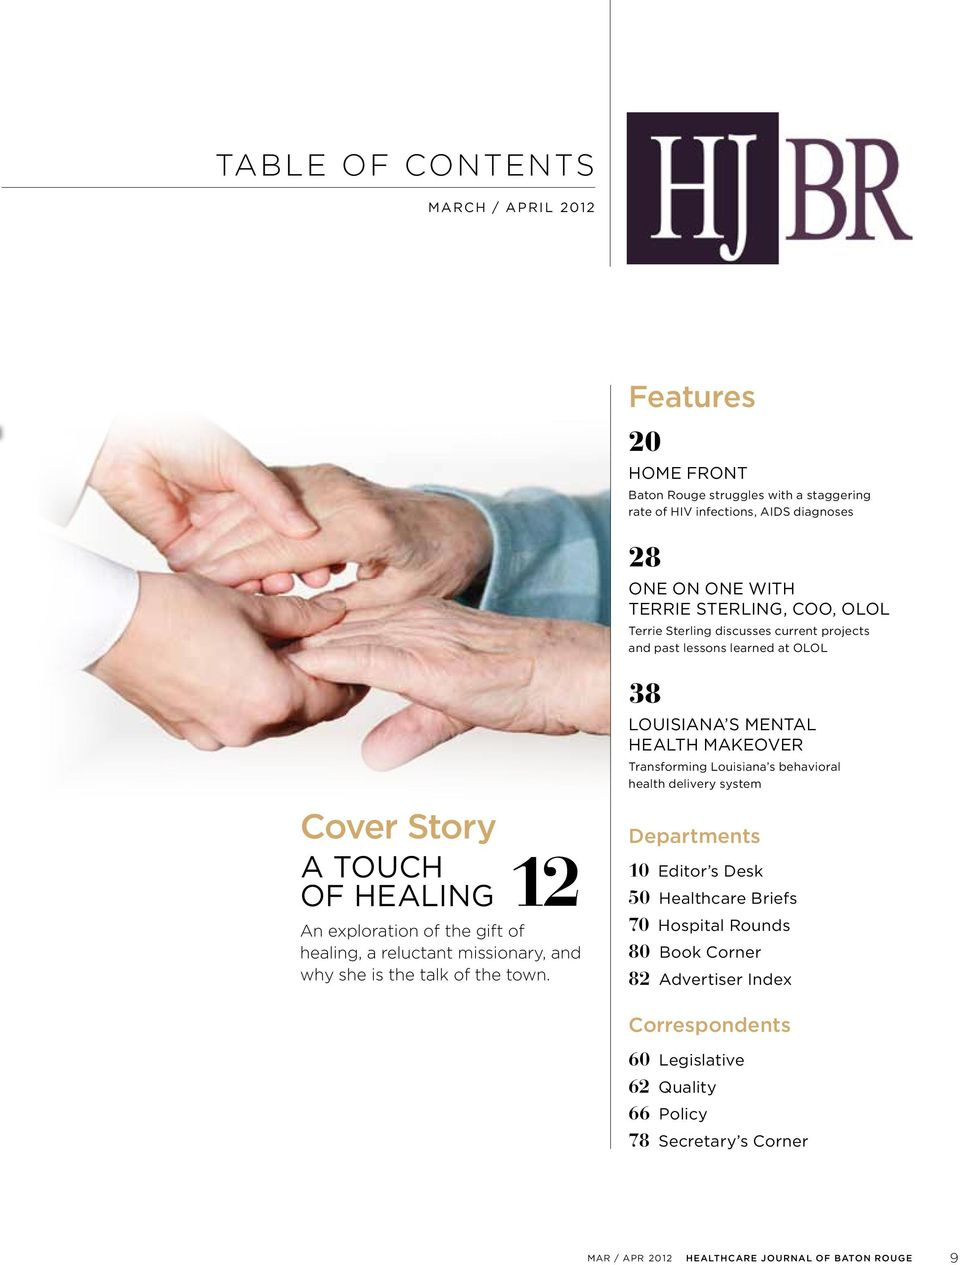 and why she is the talk of the town.